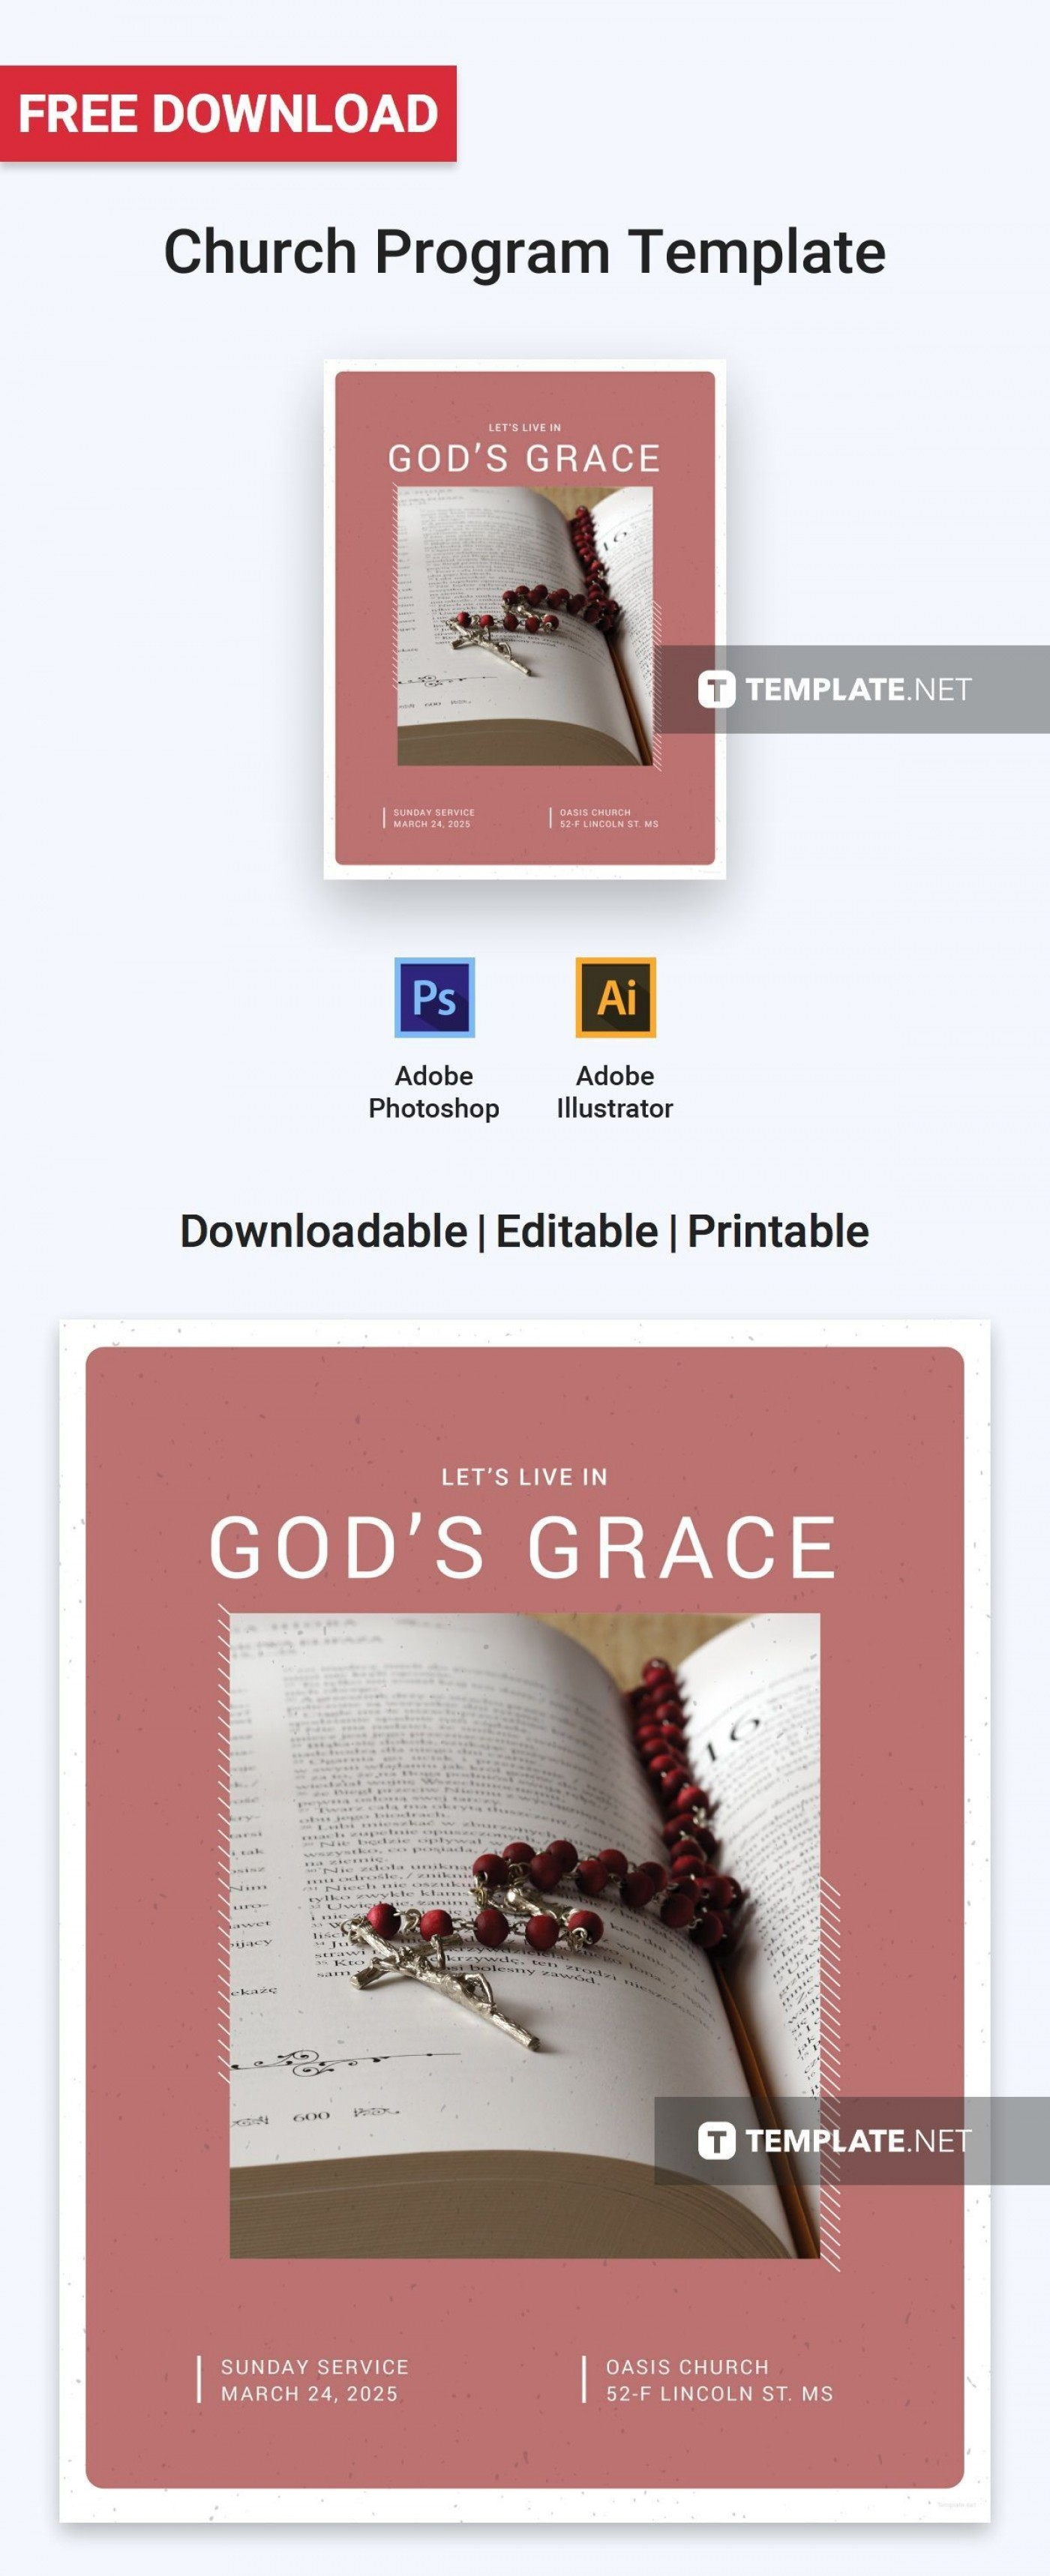 000 Unforgettable Free Church Program Template Design Image 1400